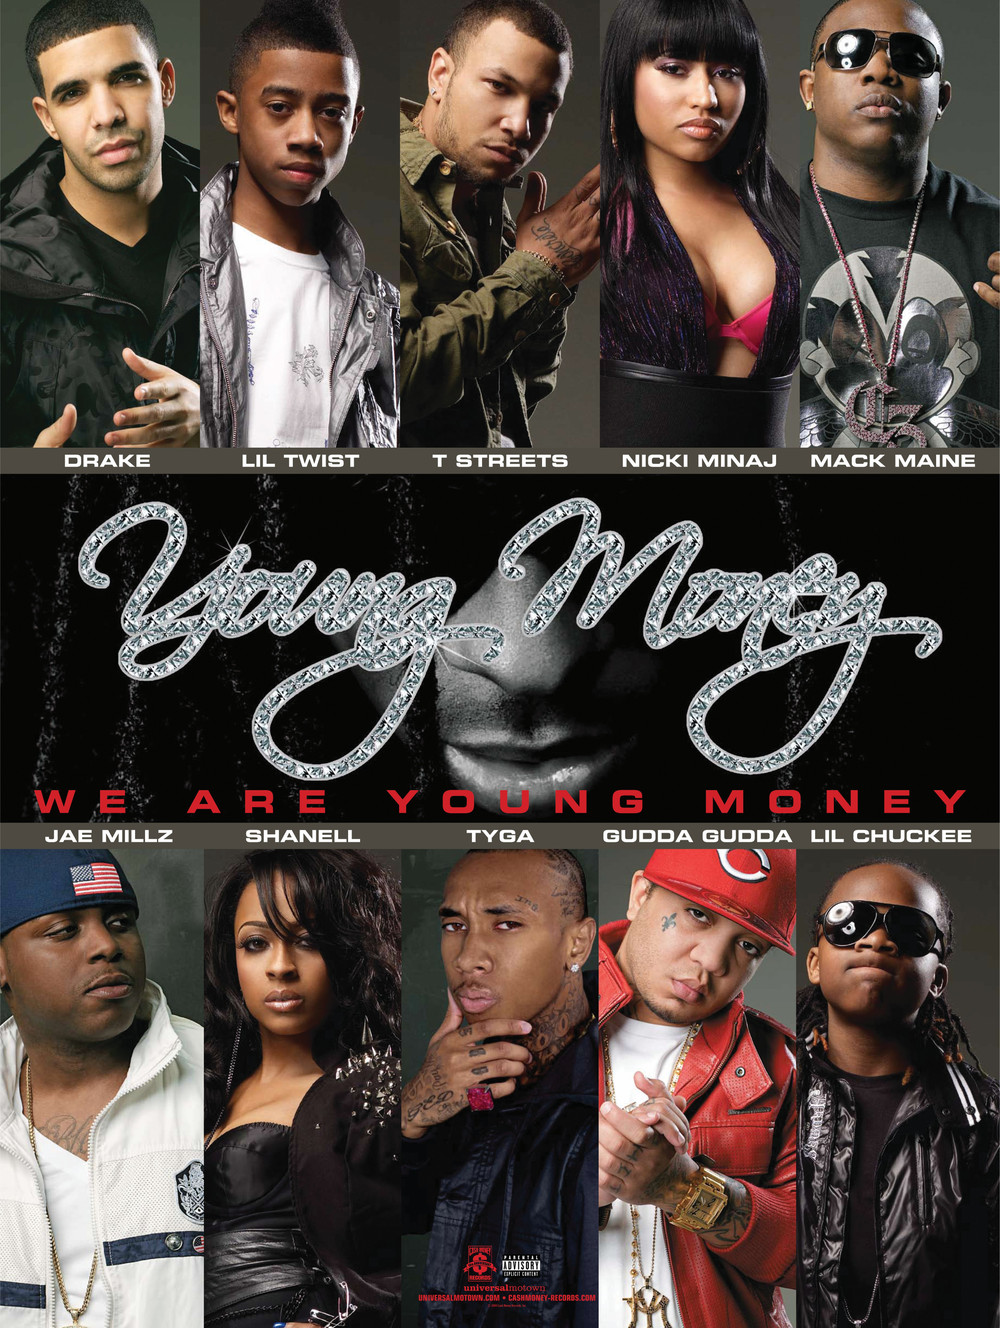 The whole young money crew